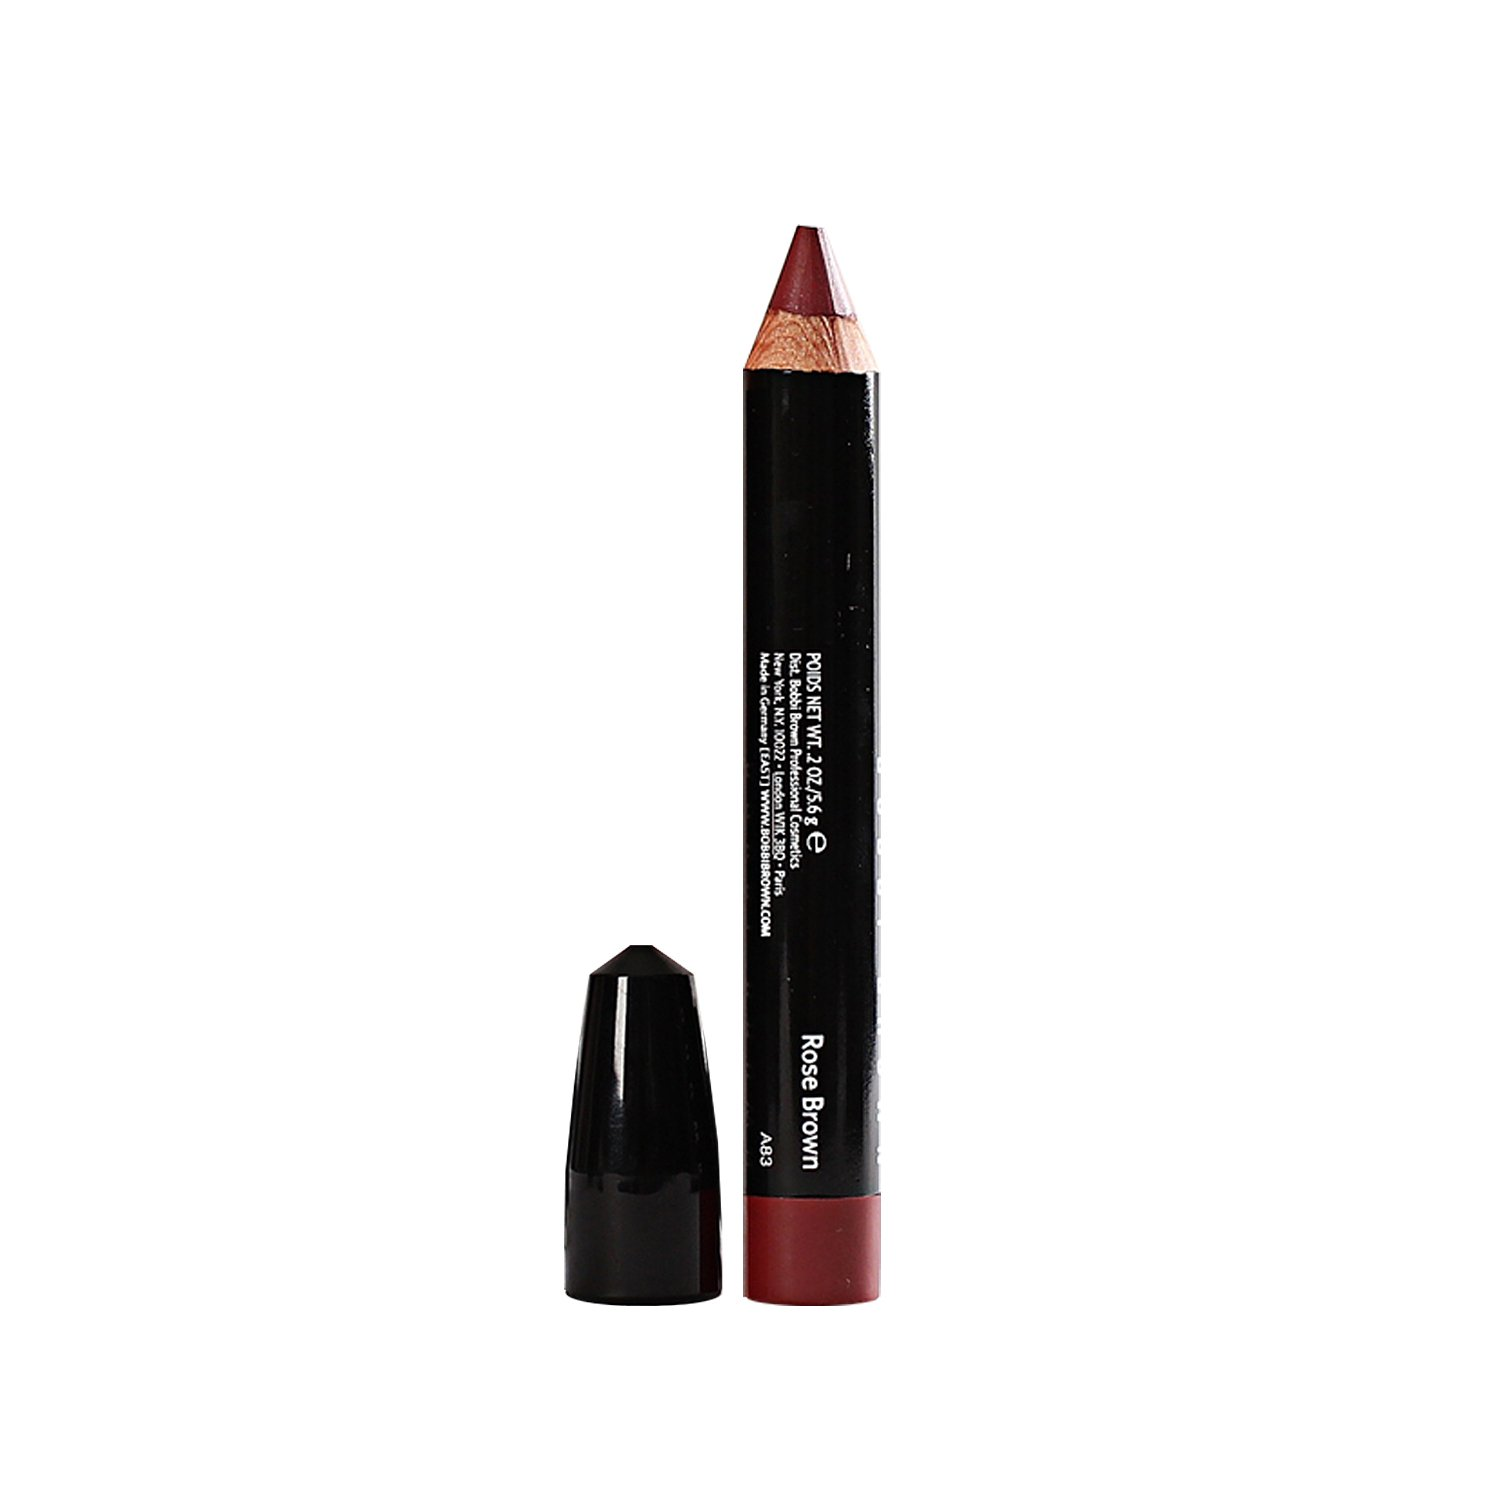 Bobbi Brown Art Stick #01 Rose Brown - 5.6g/0.2oz